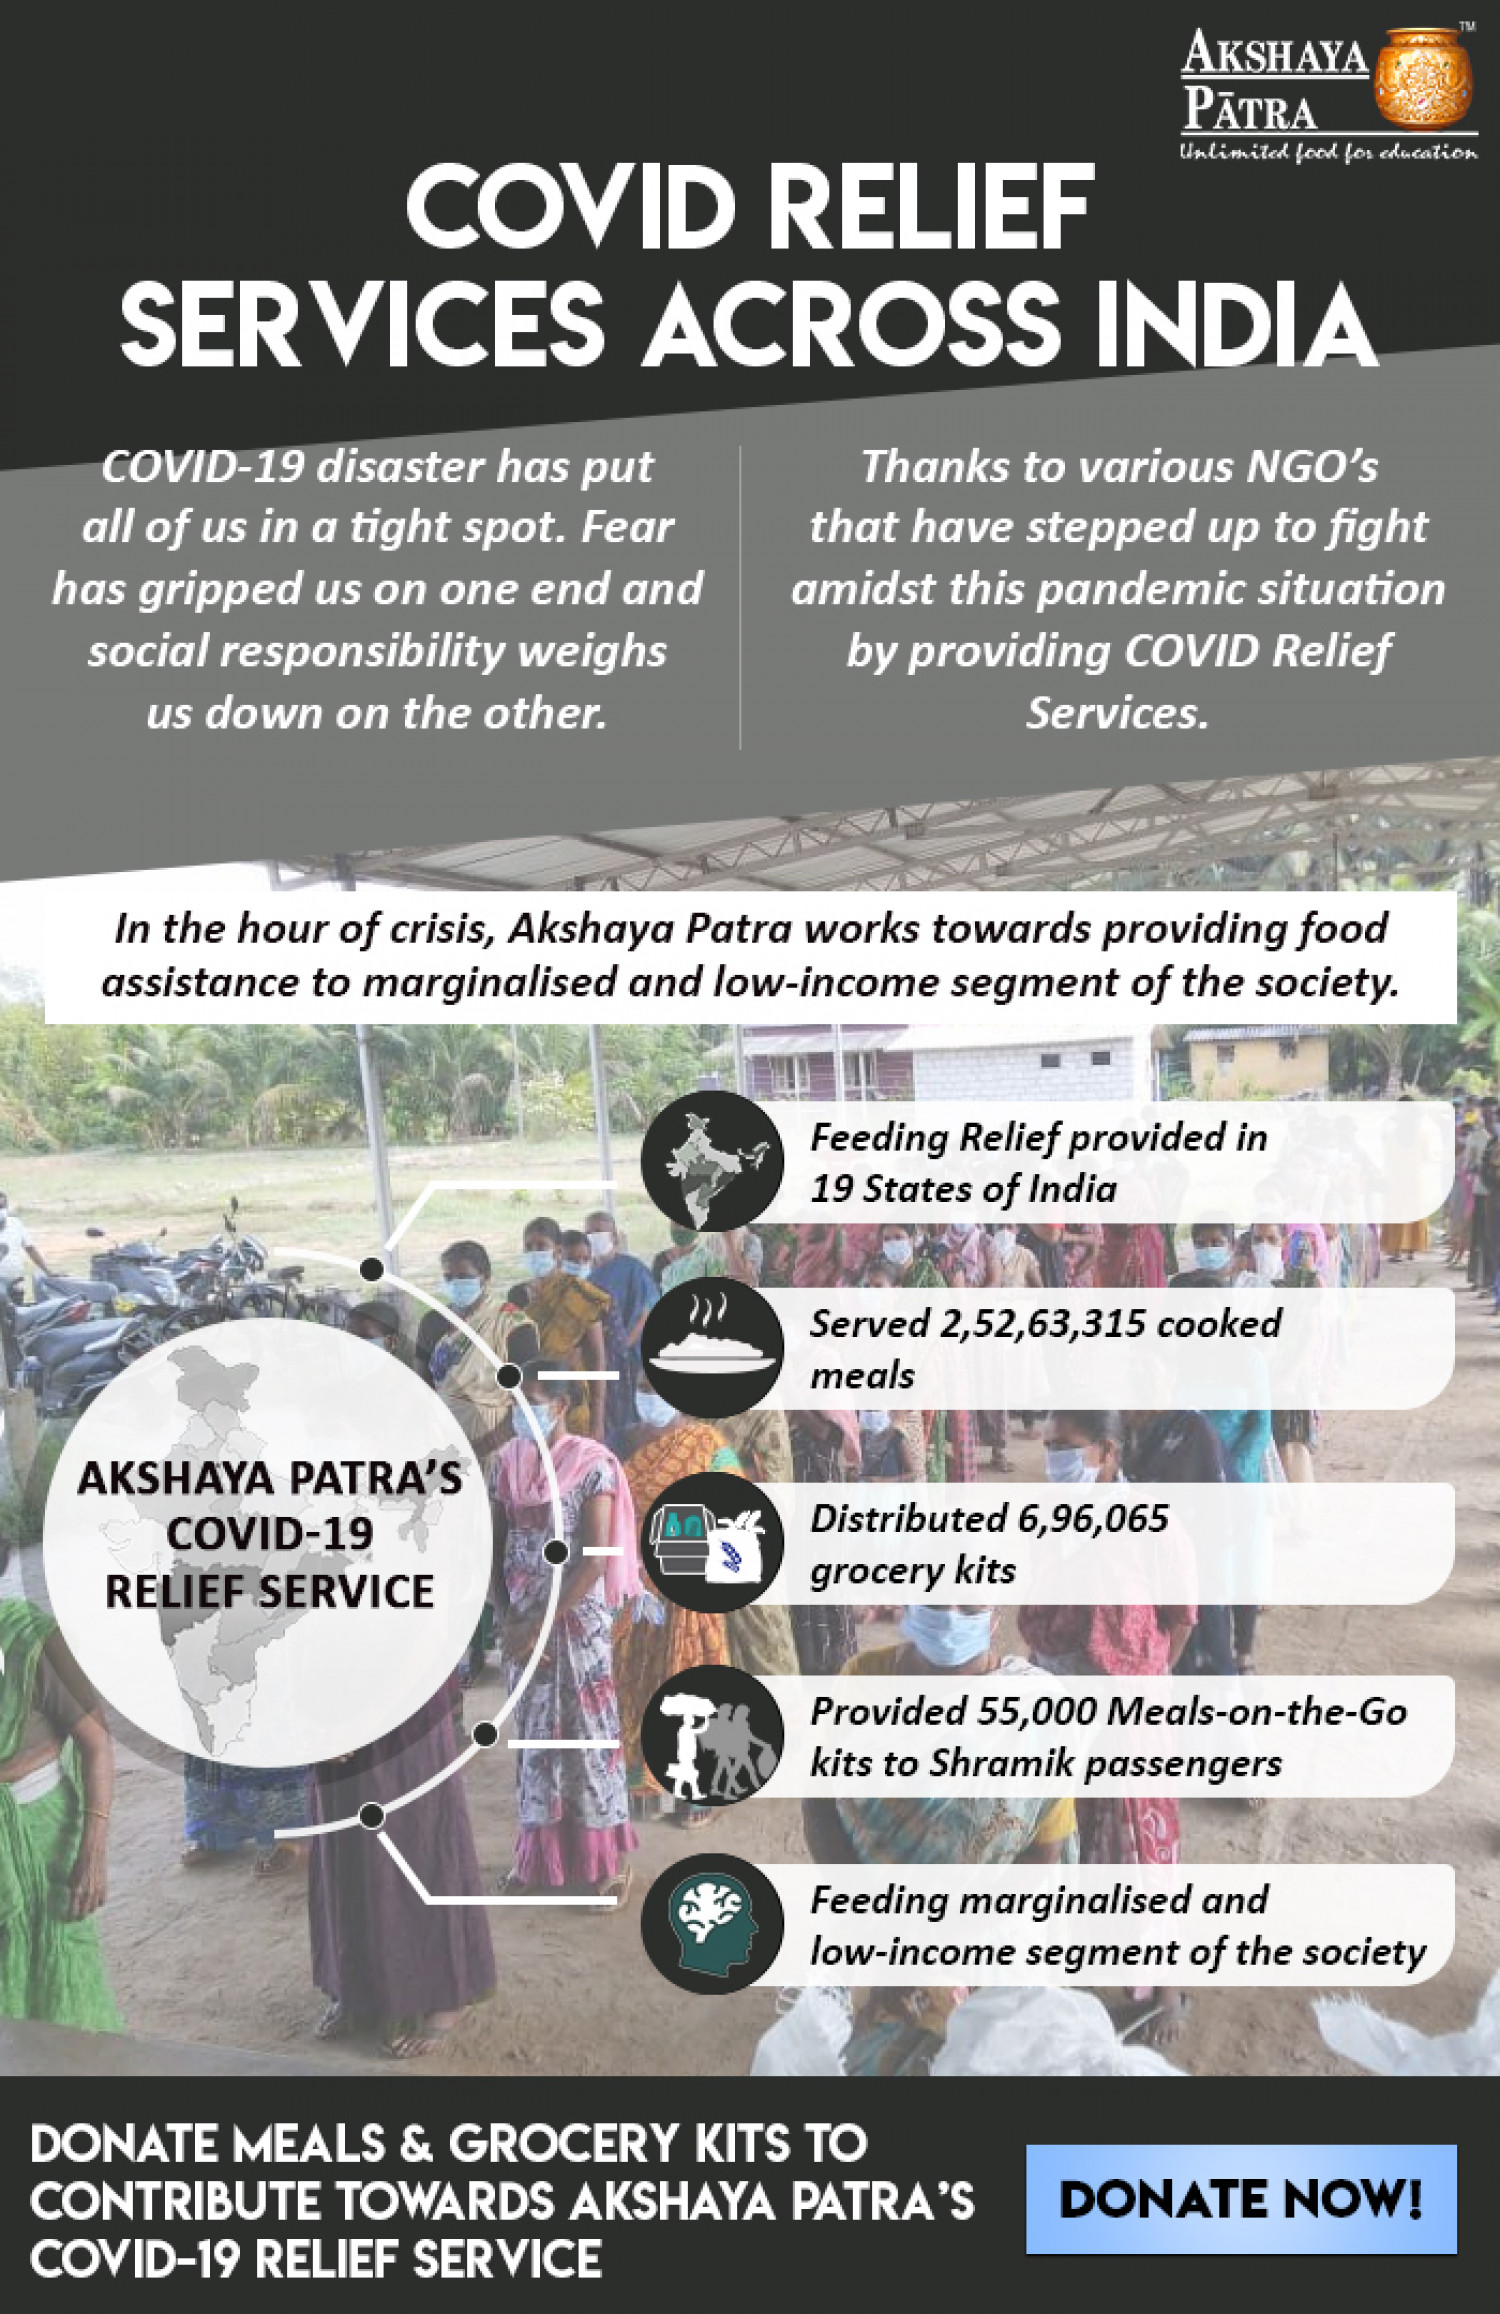 COVID Relief Services across India Infographic